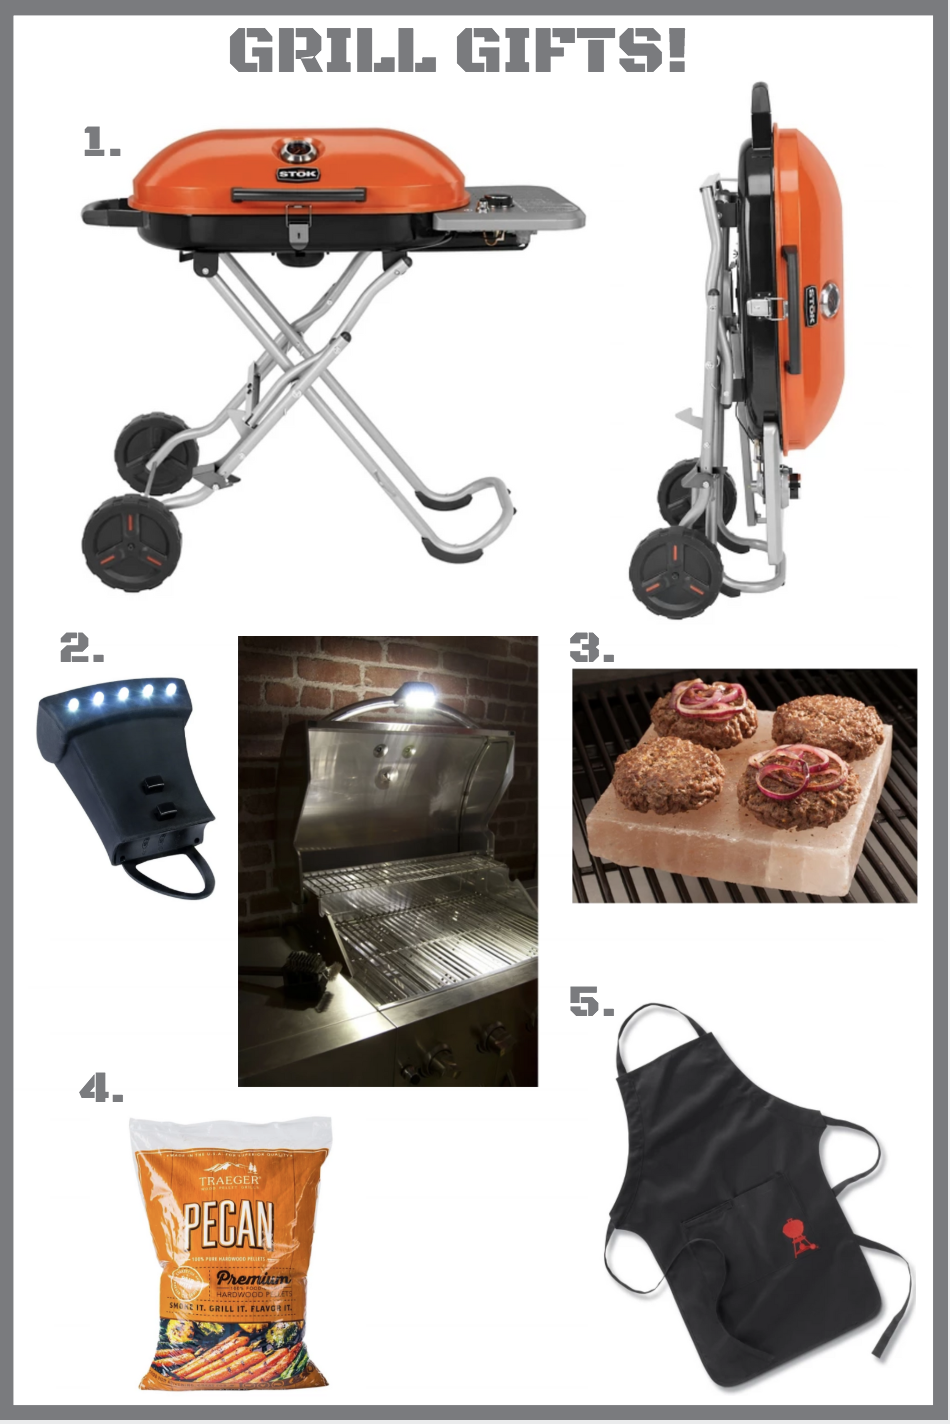 Best Grilling Gift Guide | Jana Donohoe Designs | Fayetteville, North Carolina | www.janadonohoedesigns.com